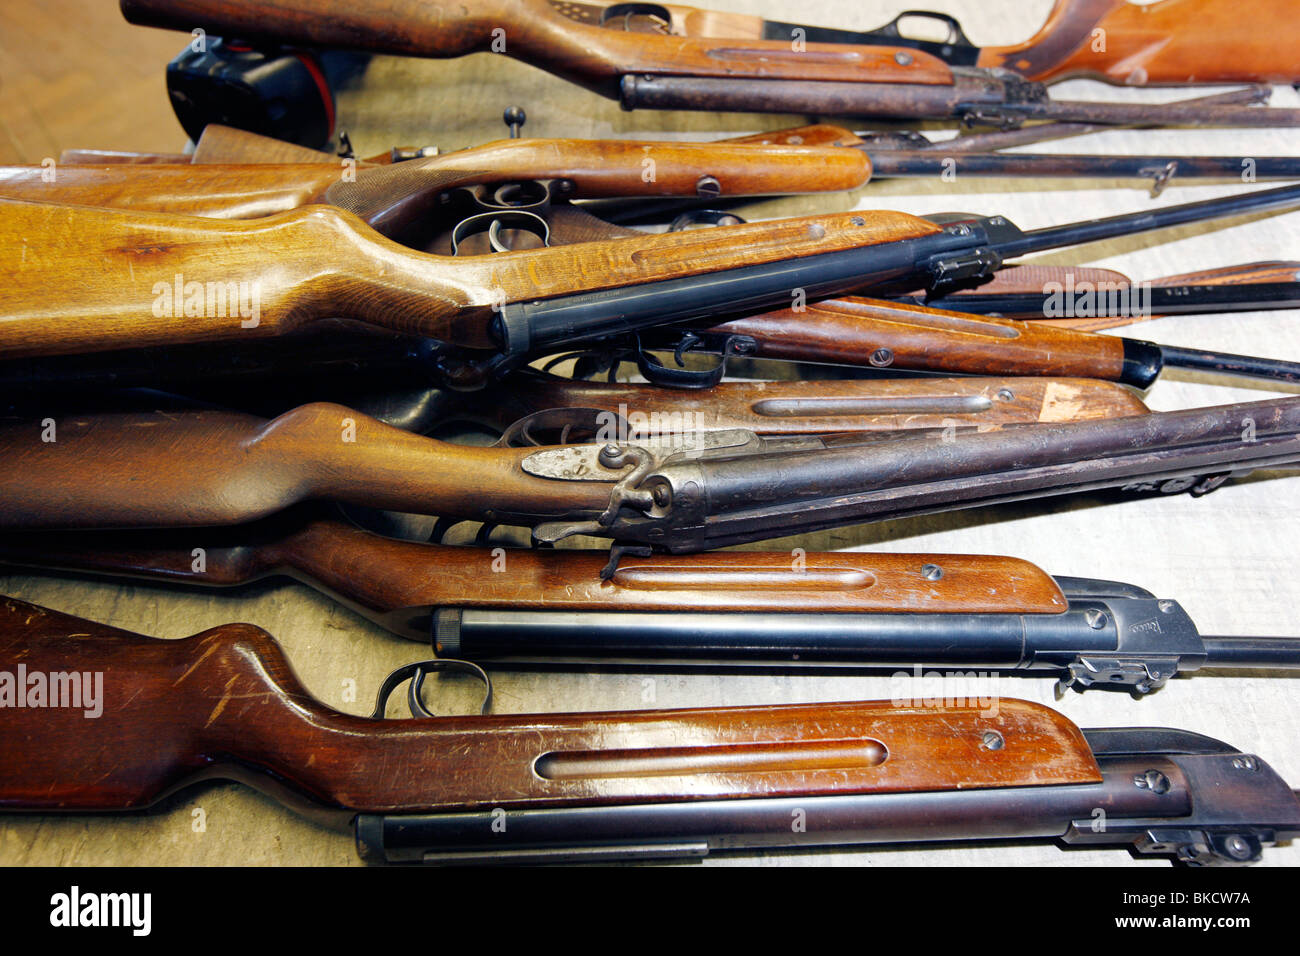 illegal and legal weapons and munition. The weapons are collect and destroyed at the LZPD in Germany Stock Photo